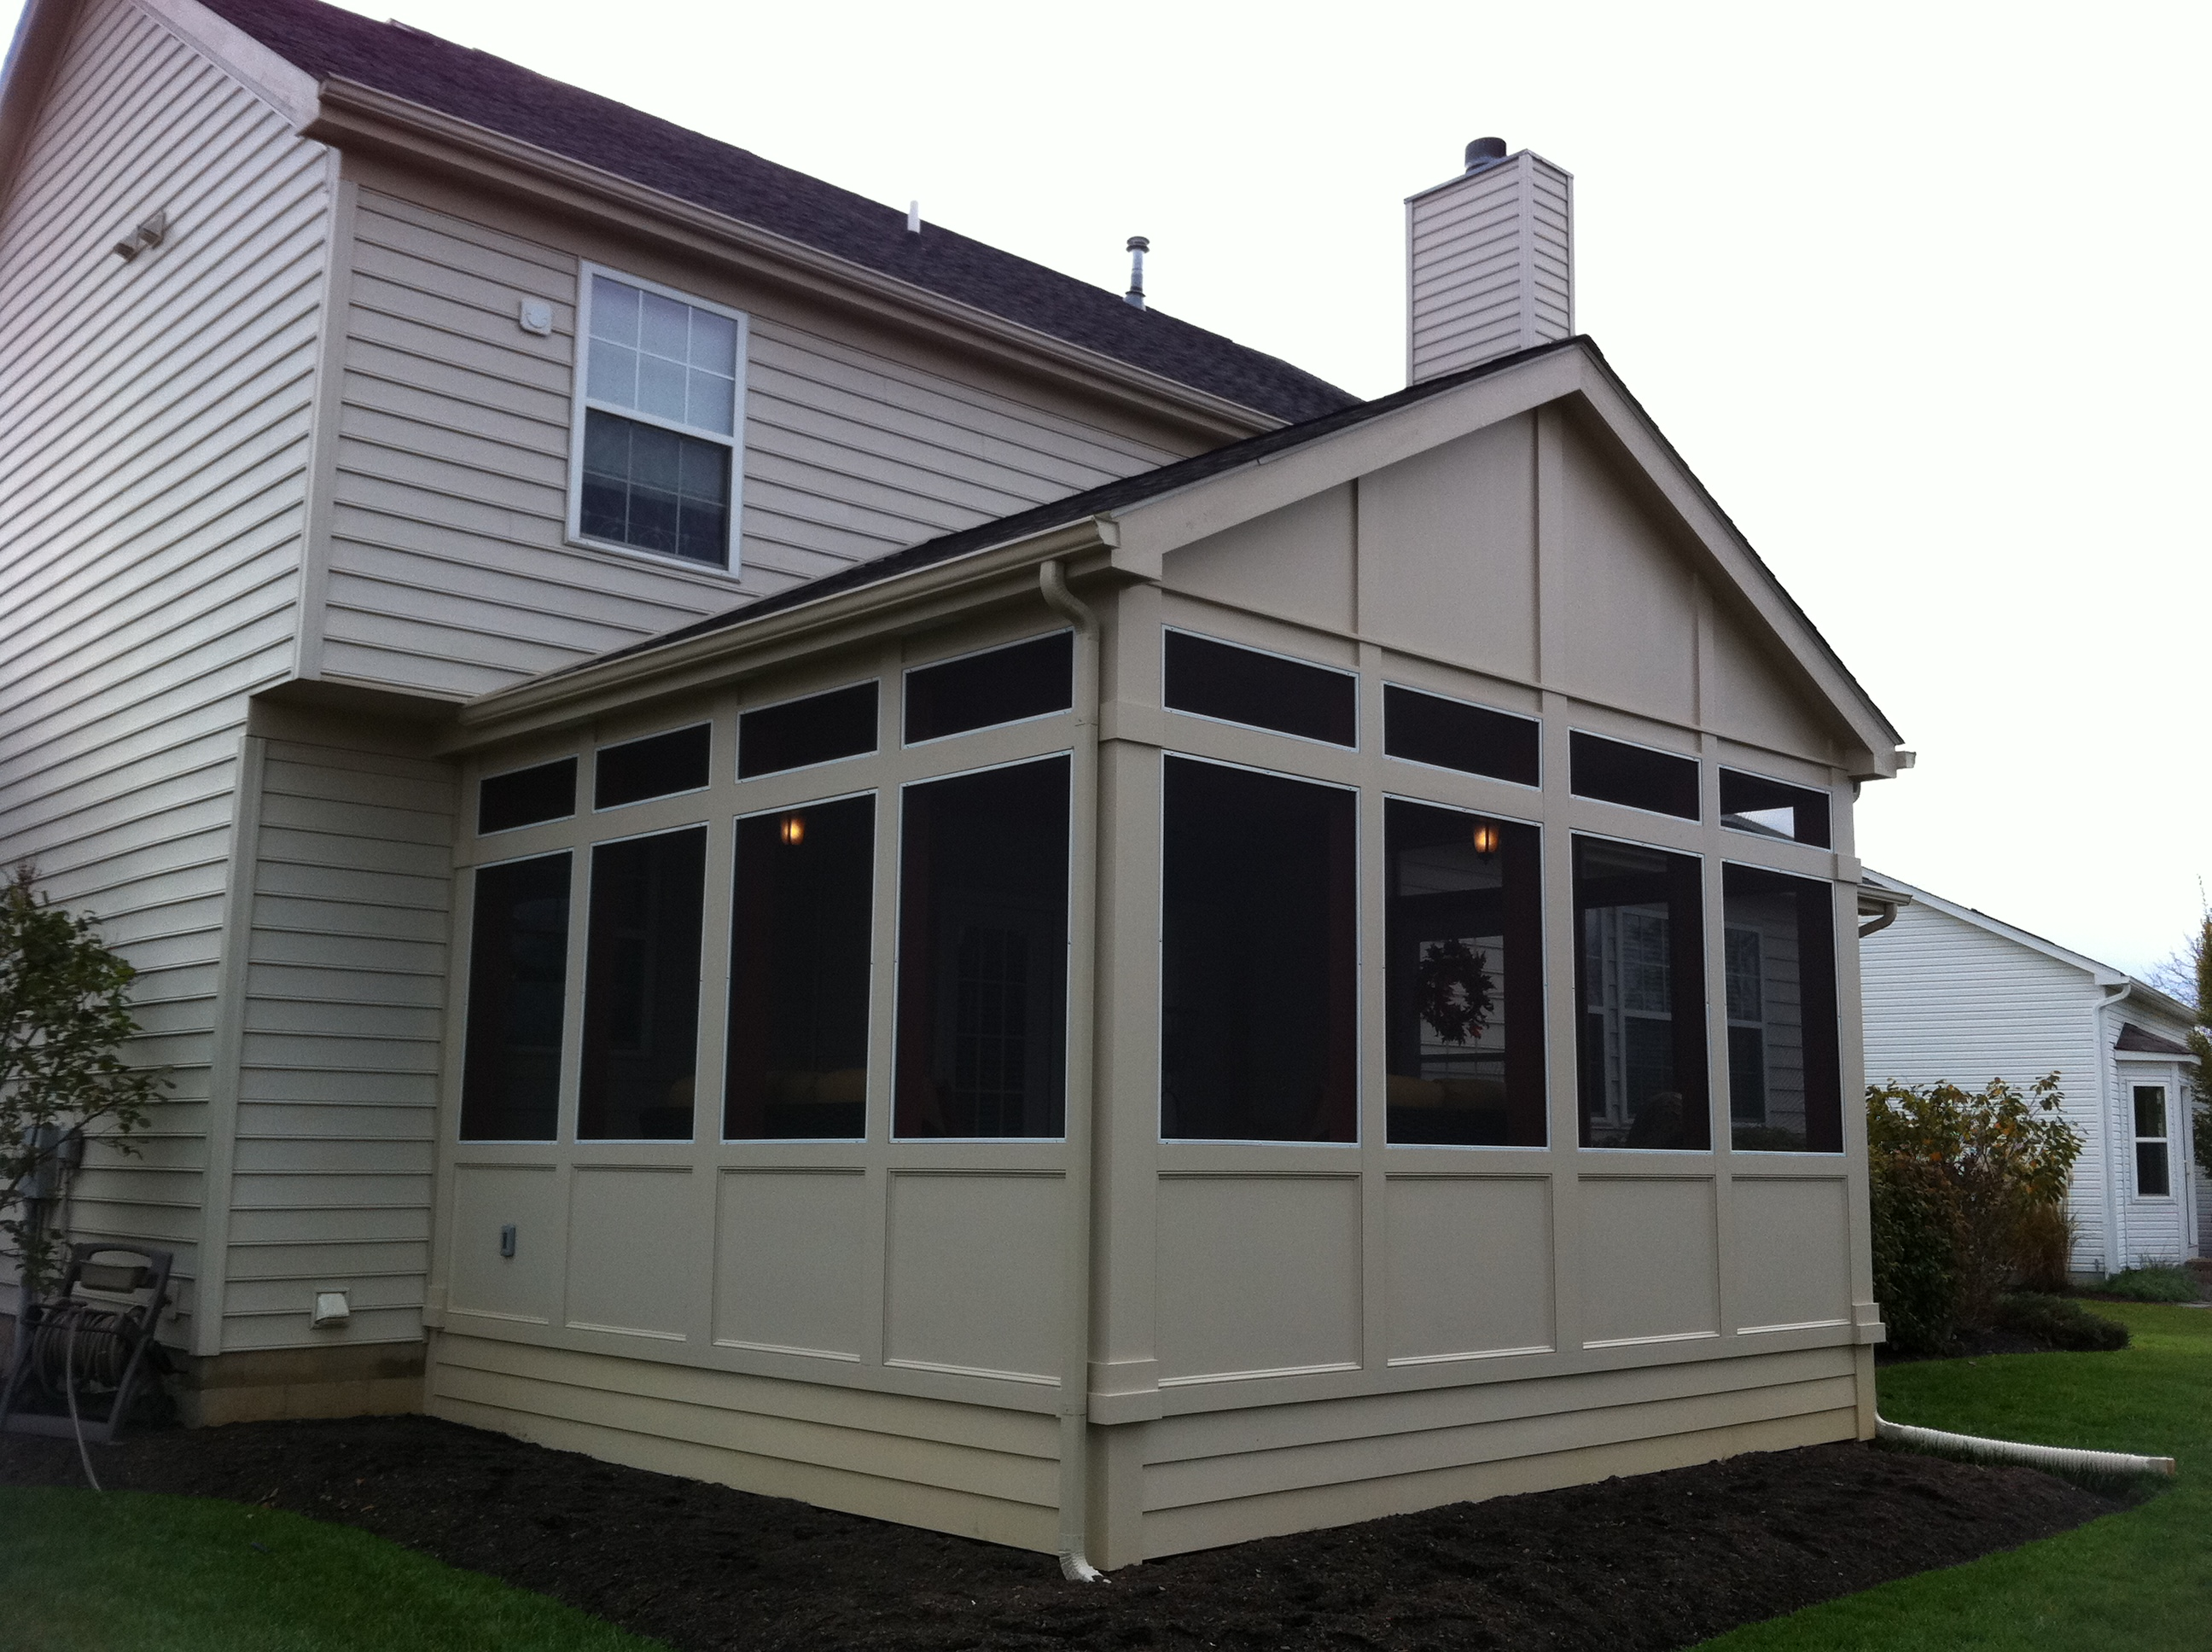 Gable roof with cantilever Shed with screened porch